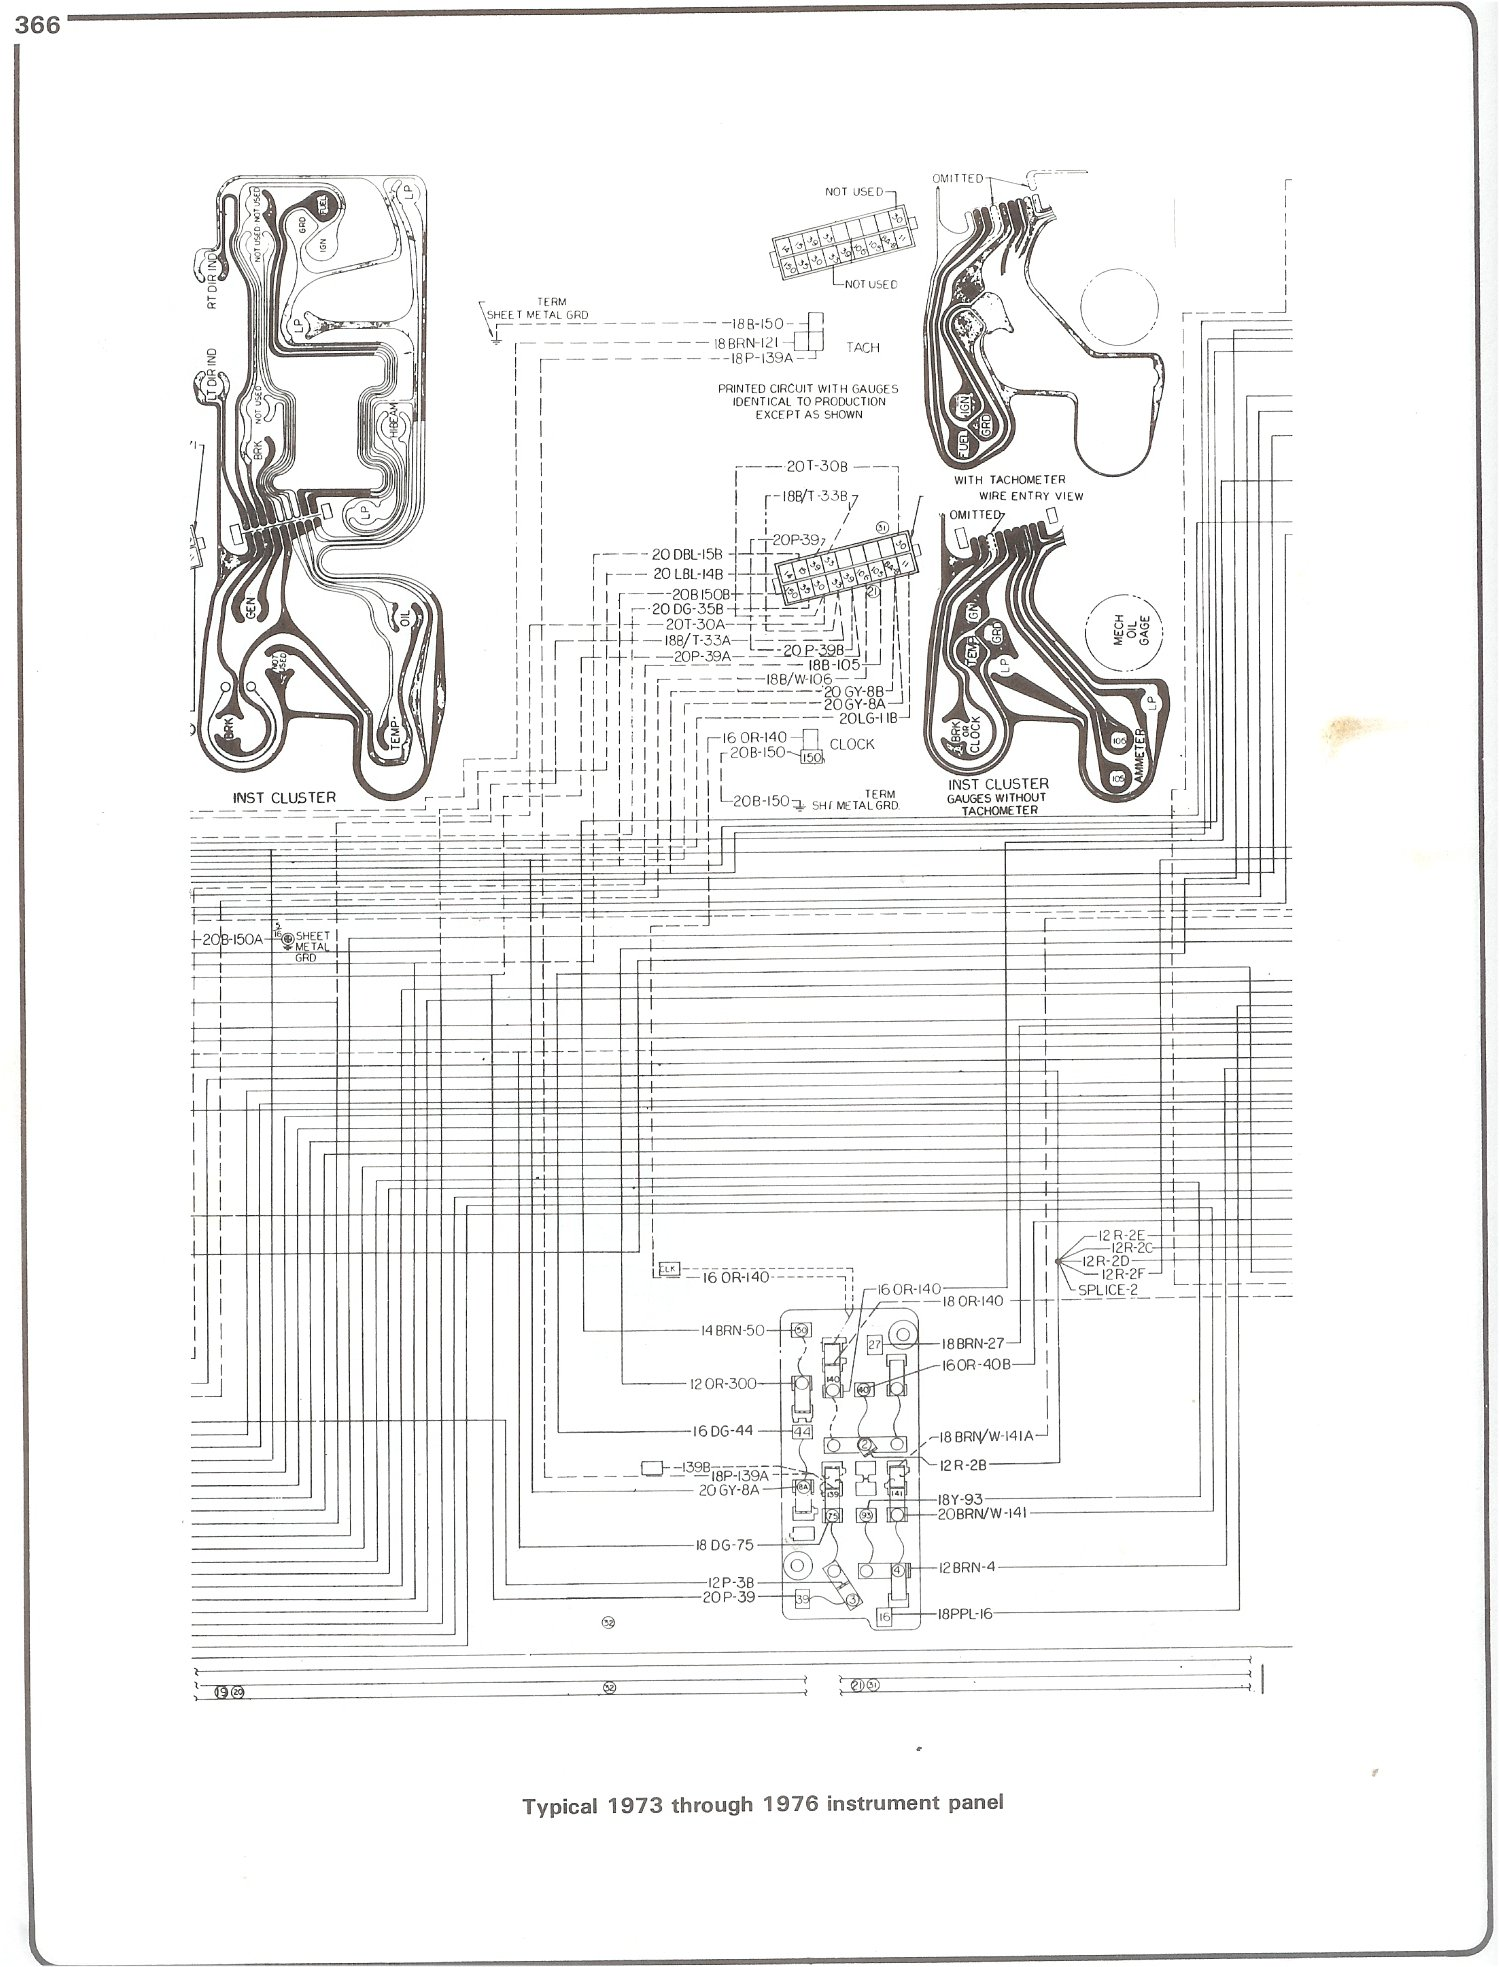 complete 73 87 wiring diagrams rh forum 73 87chevytrucks com 83 Chevrolet S10 Blazer 85 K5 Blazer with Black Primer